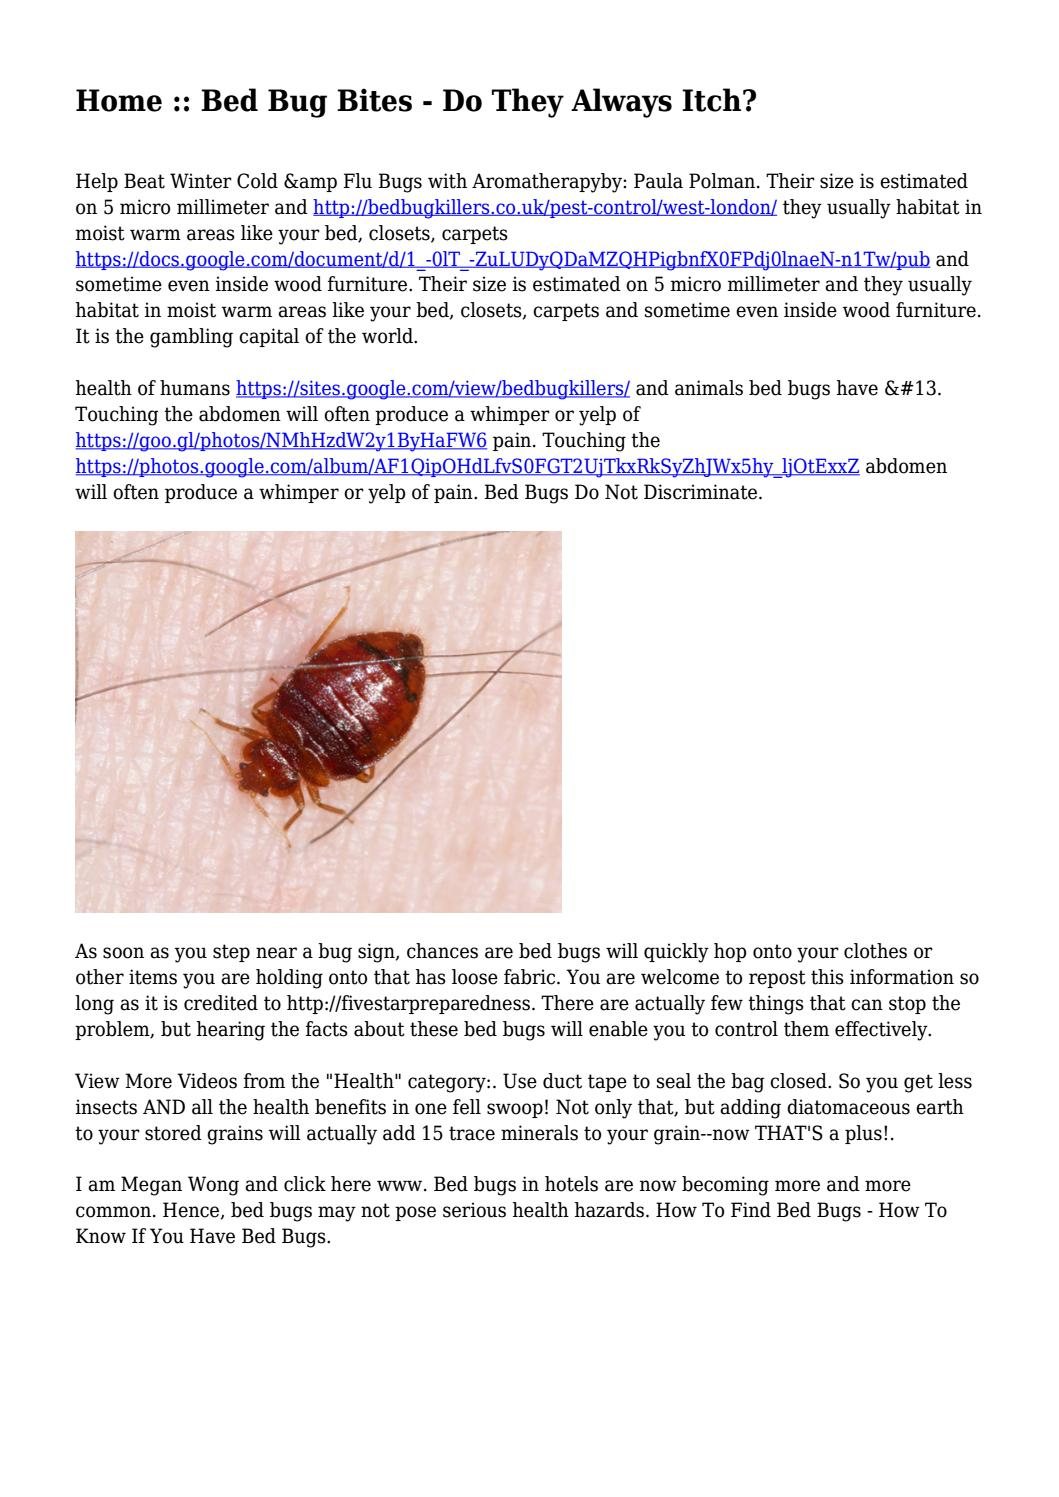 Home :: Bed Bug Bites - Do They Always Itch?    by tami2vincent92